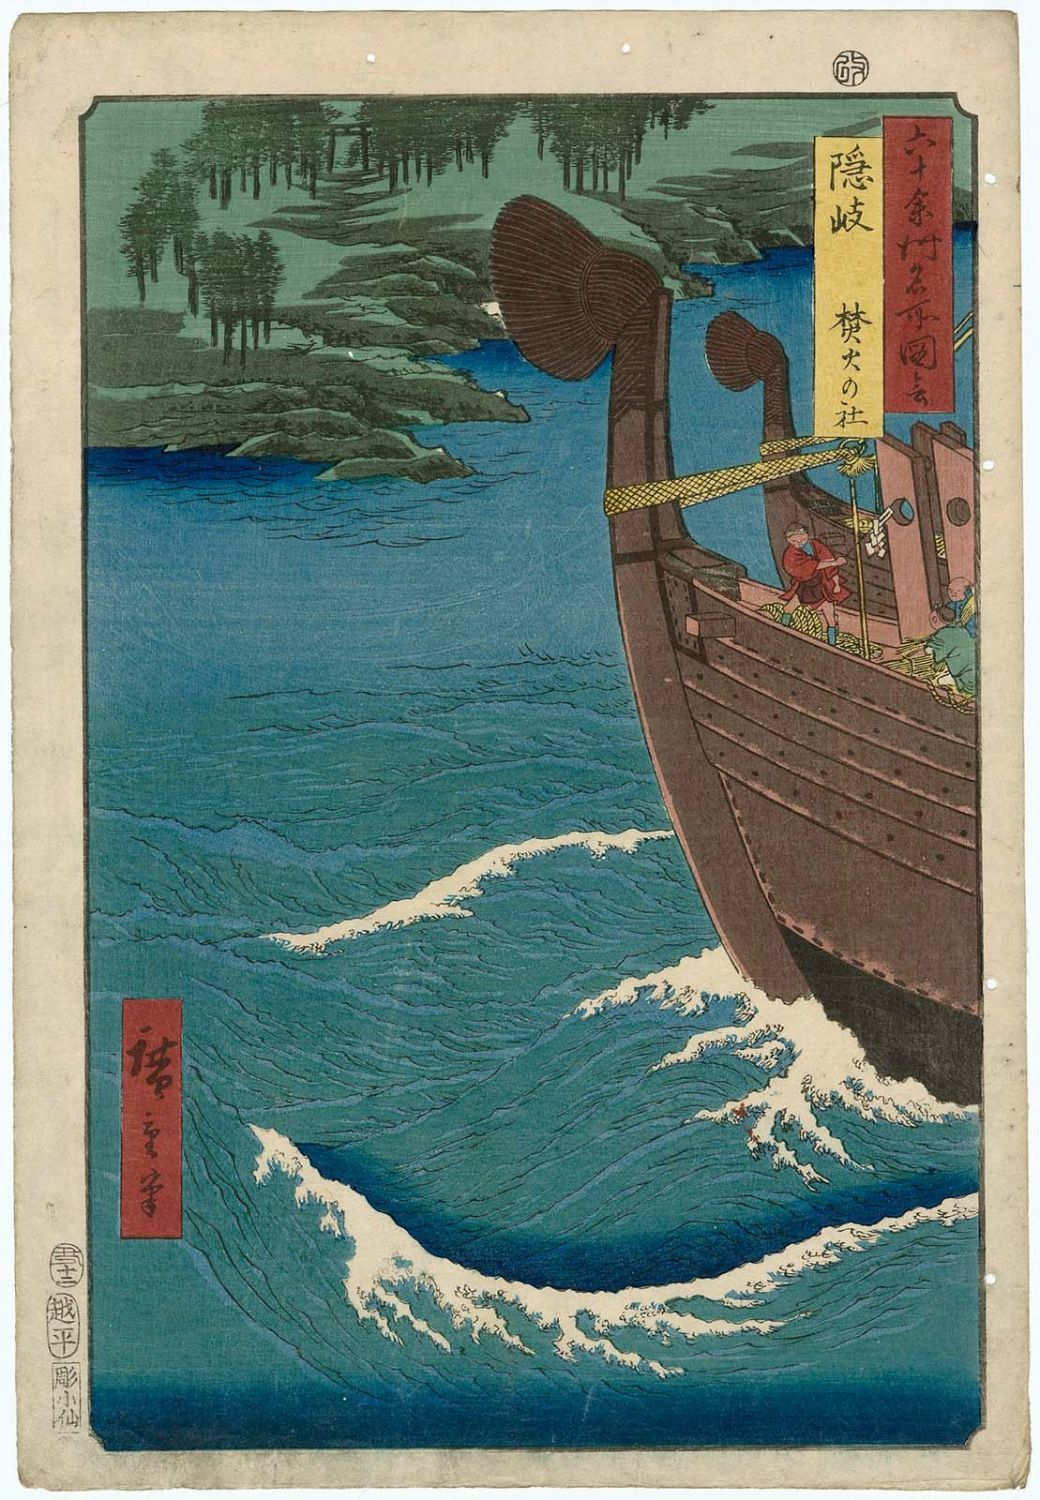 Utagawa Hiroshige: The Torch Shrine in Oki Province, no. 44 from the series  Pictures of Famous Places in the Sixty-odd Provinces - University of  Wisconsin-Madison - Ukiyo-e Search